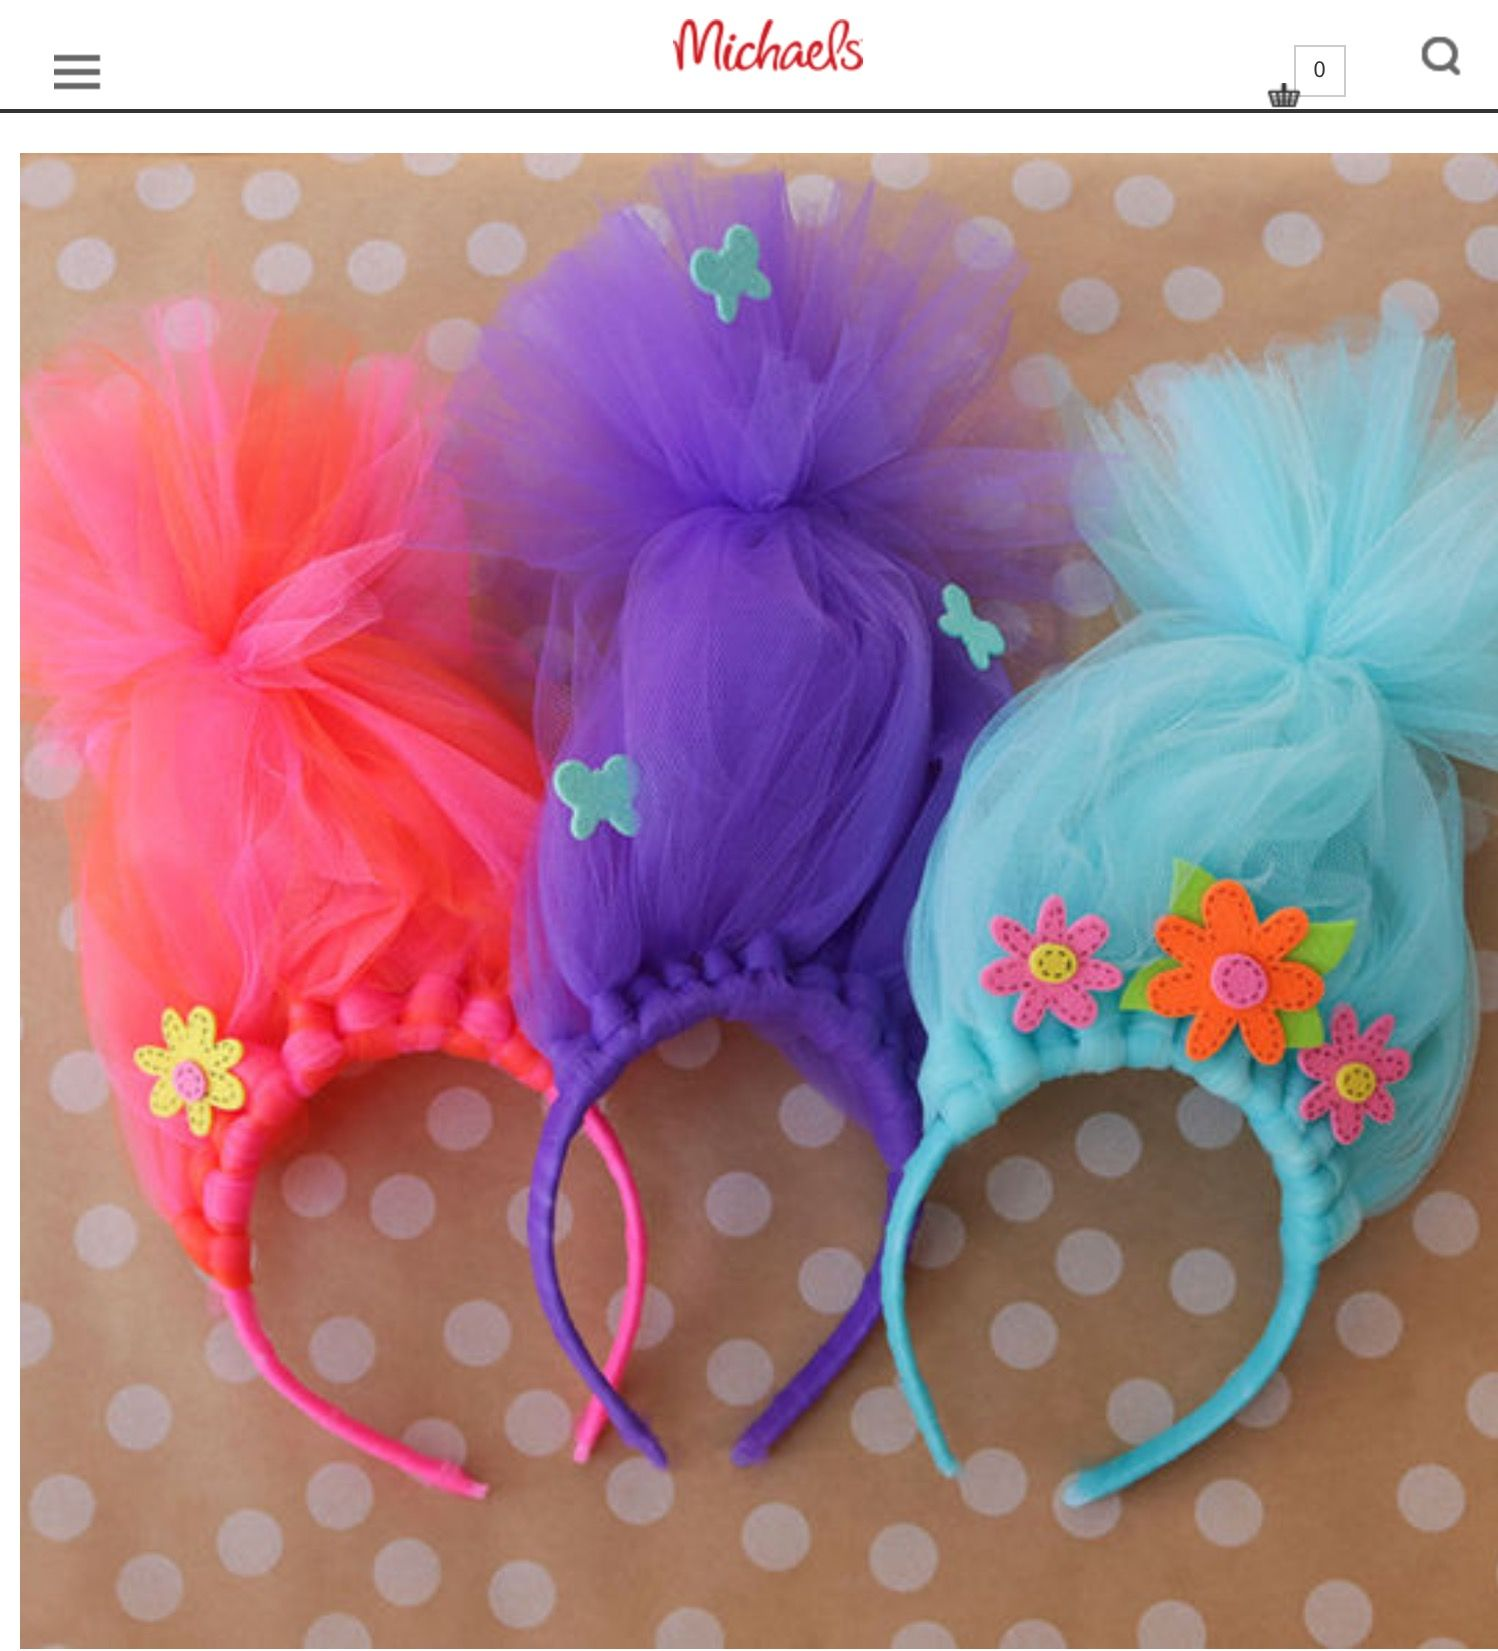 http://www.michaels.com/crazy-hair-headband/B_83644.html?productsource=projects